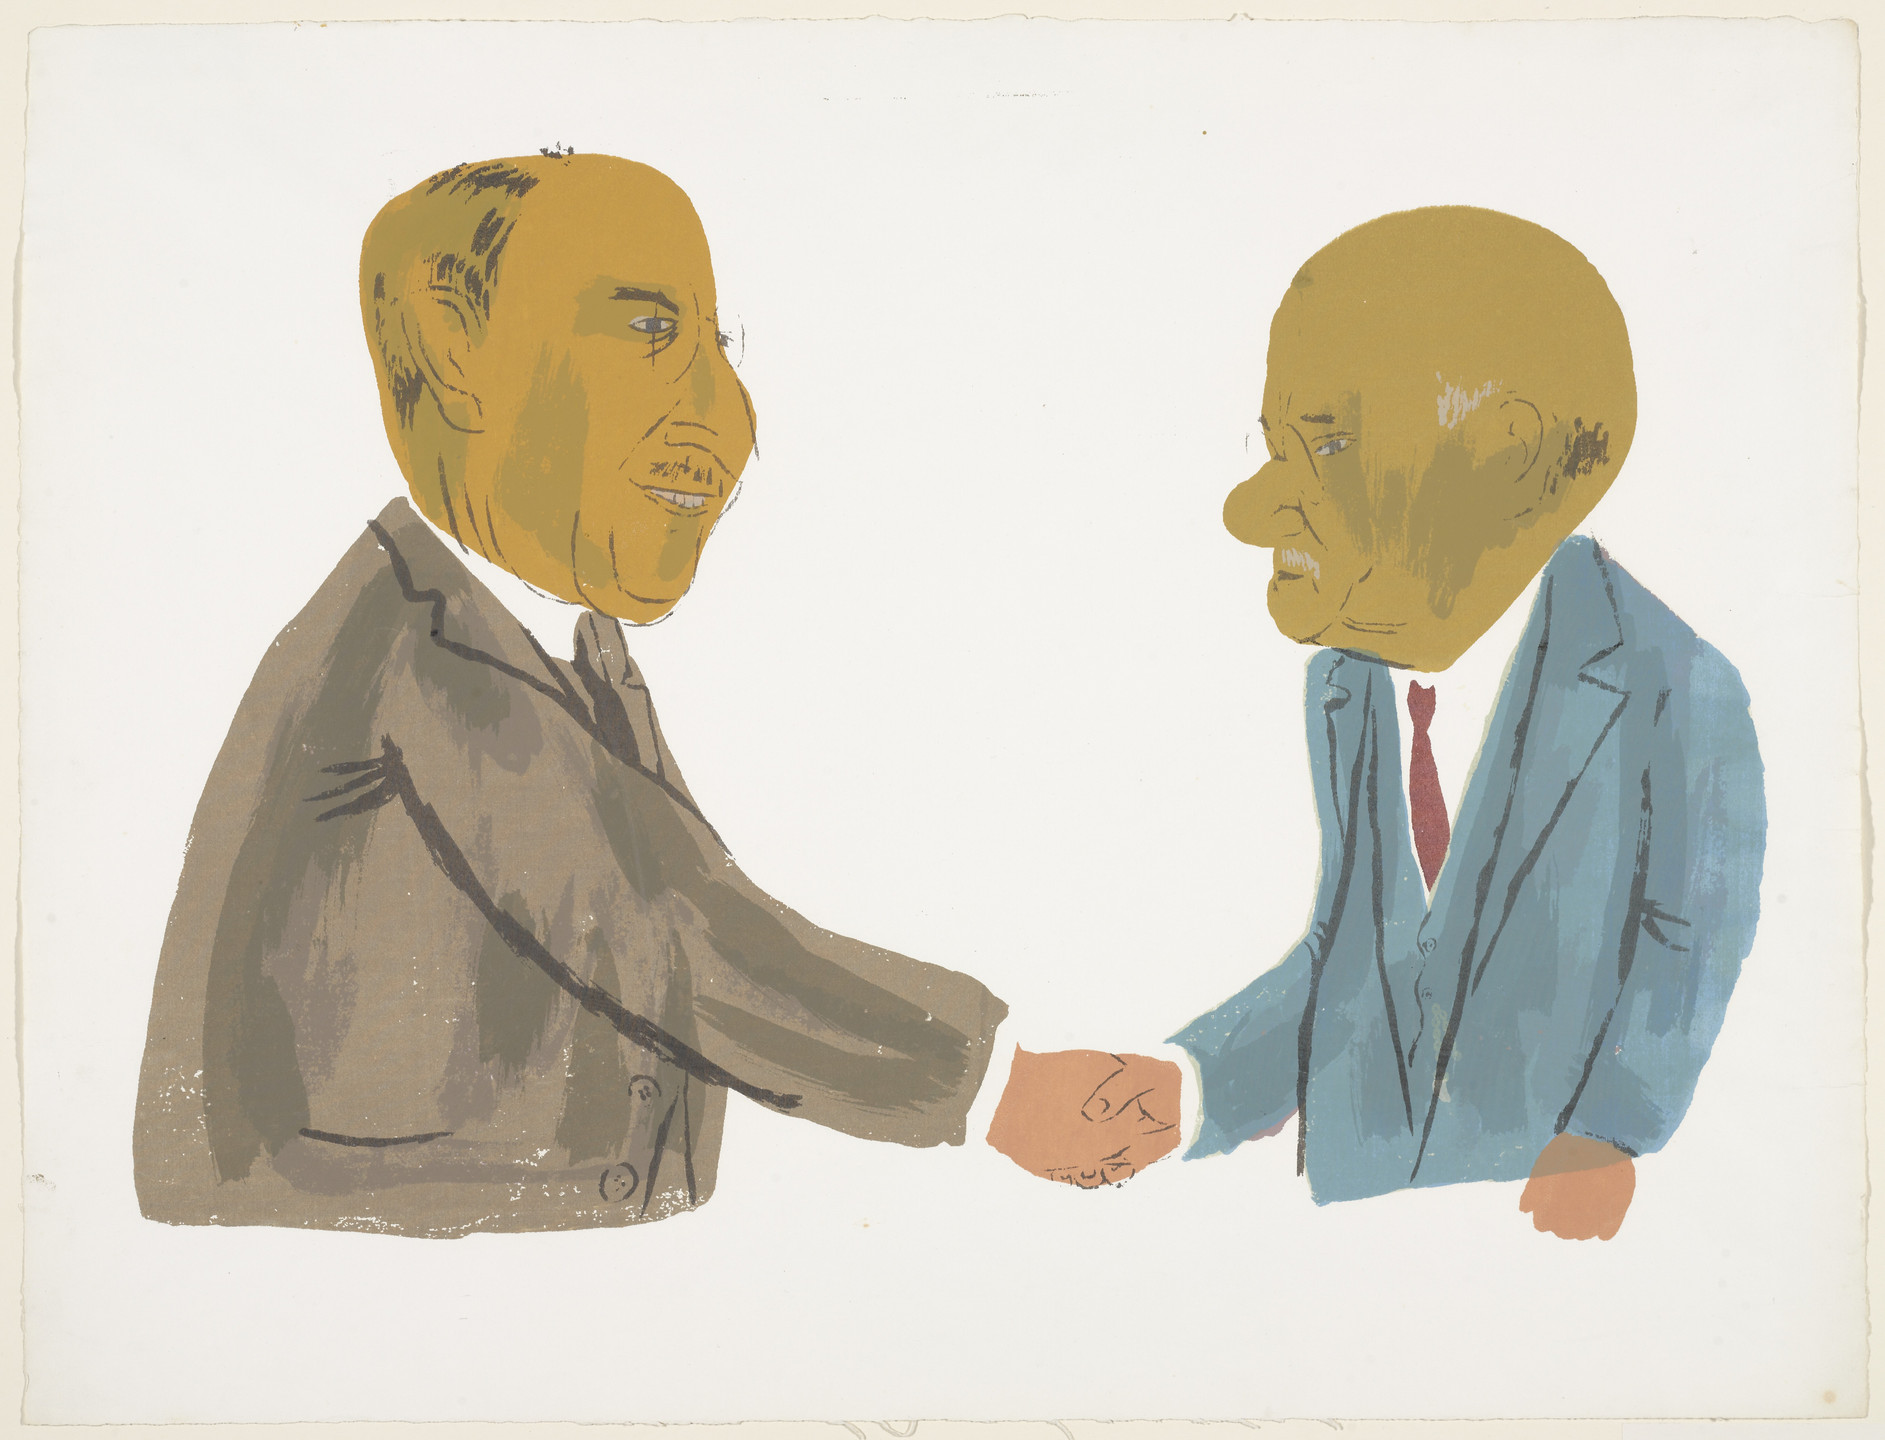 Ben Shahn. The Handshake. 1942